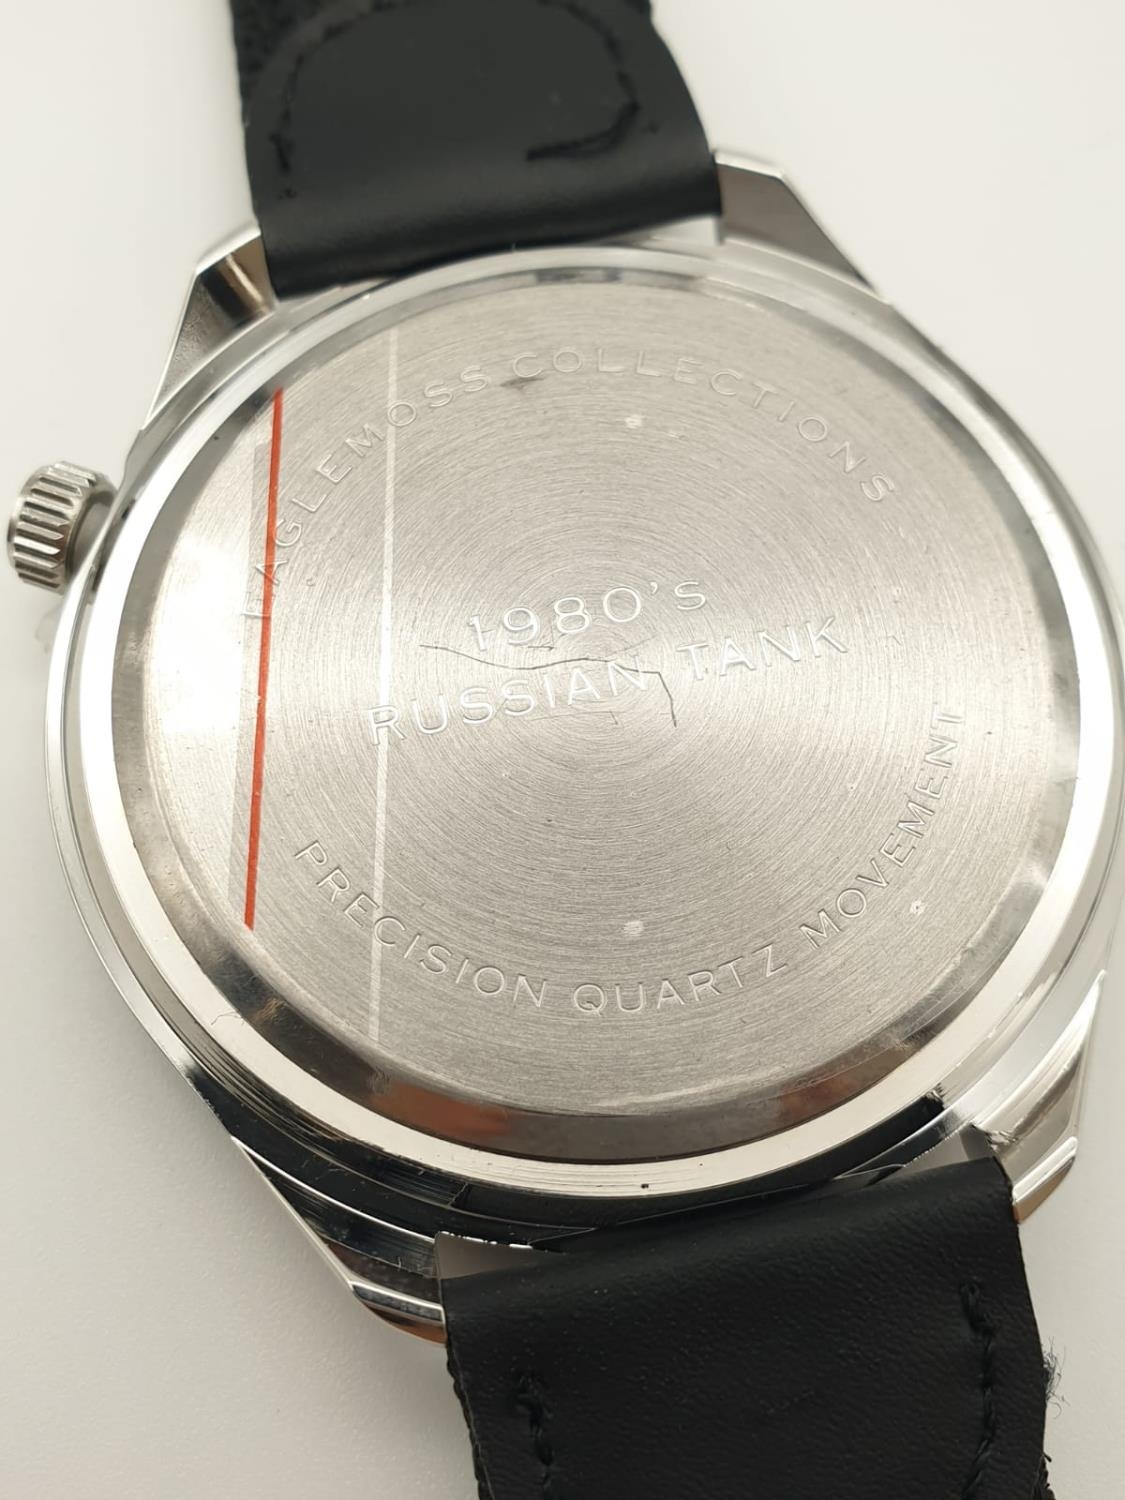 1980'S RUSSIAN TANK WATCH , BOXED AS NEW - Image 6 of 6